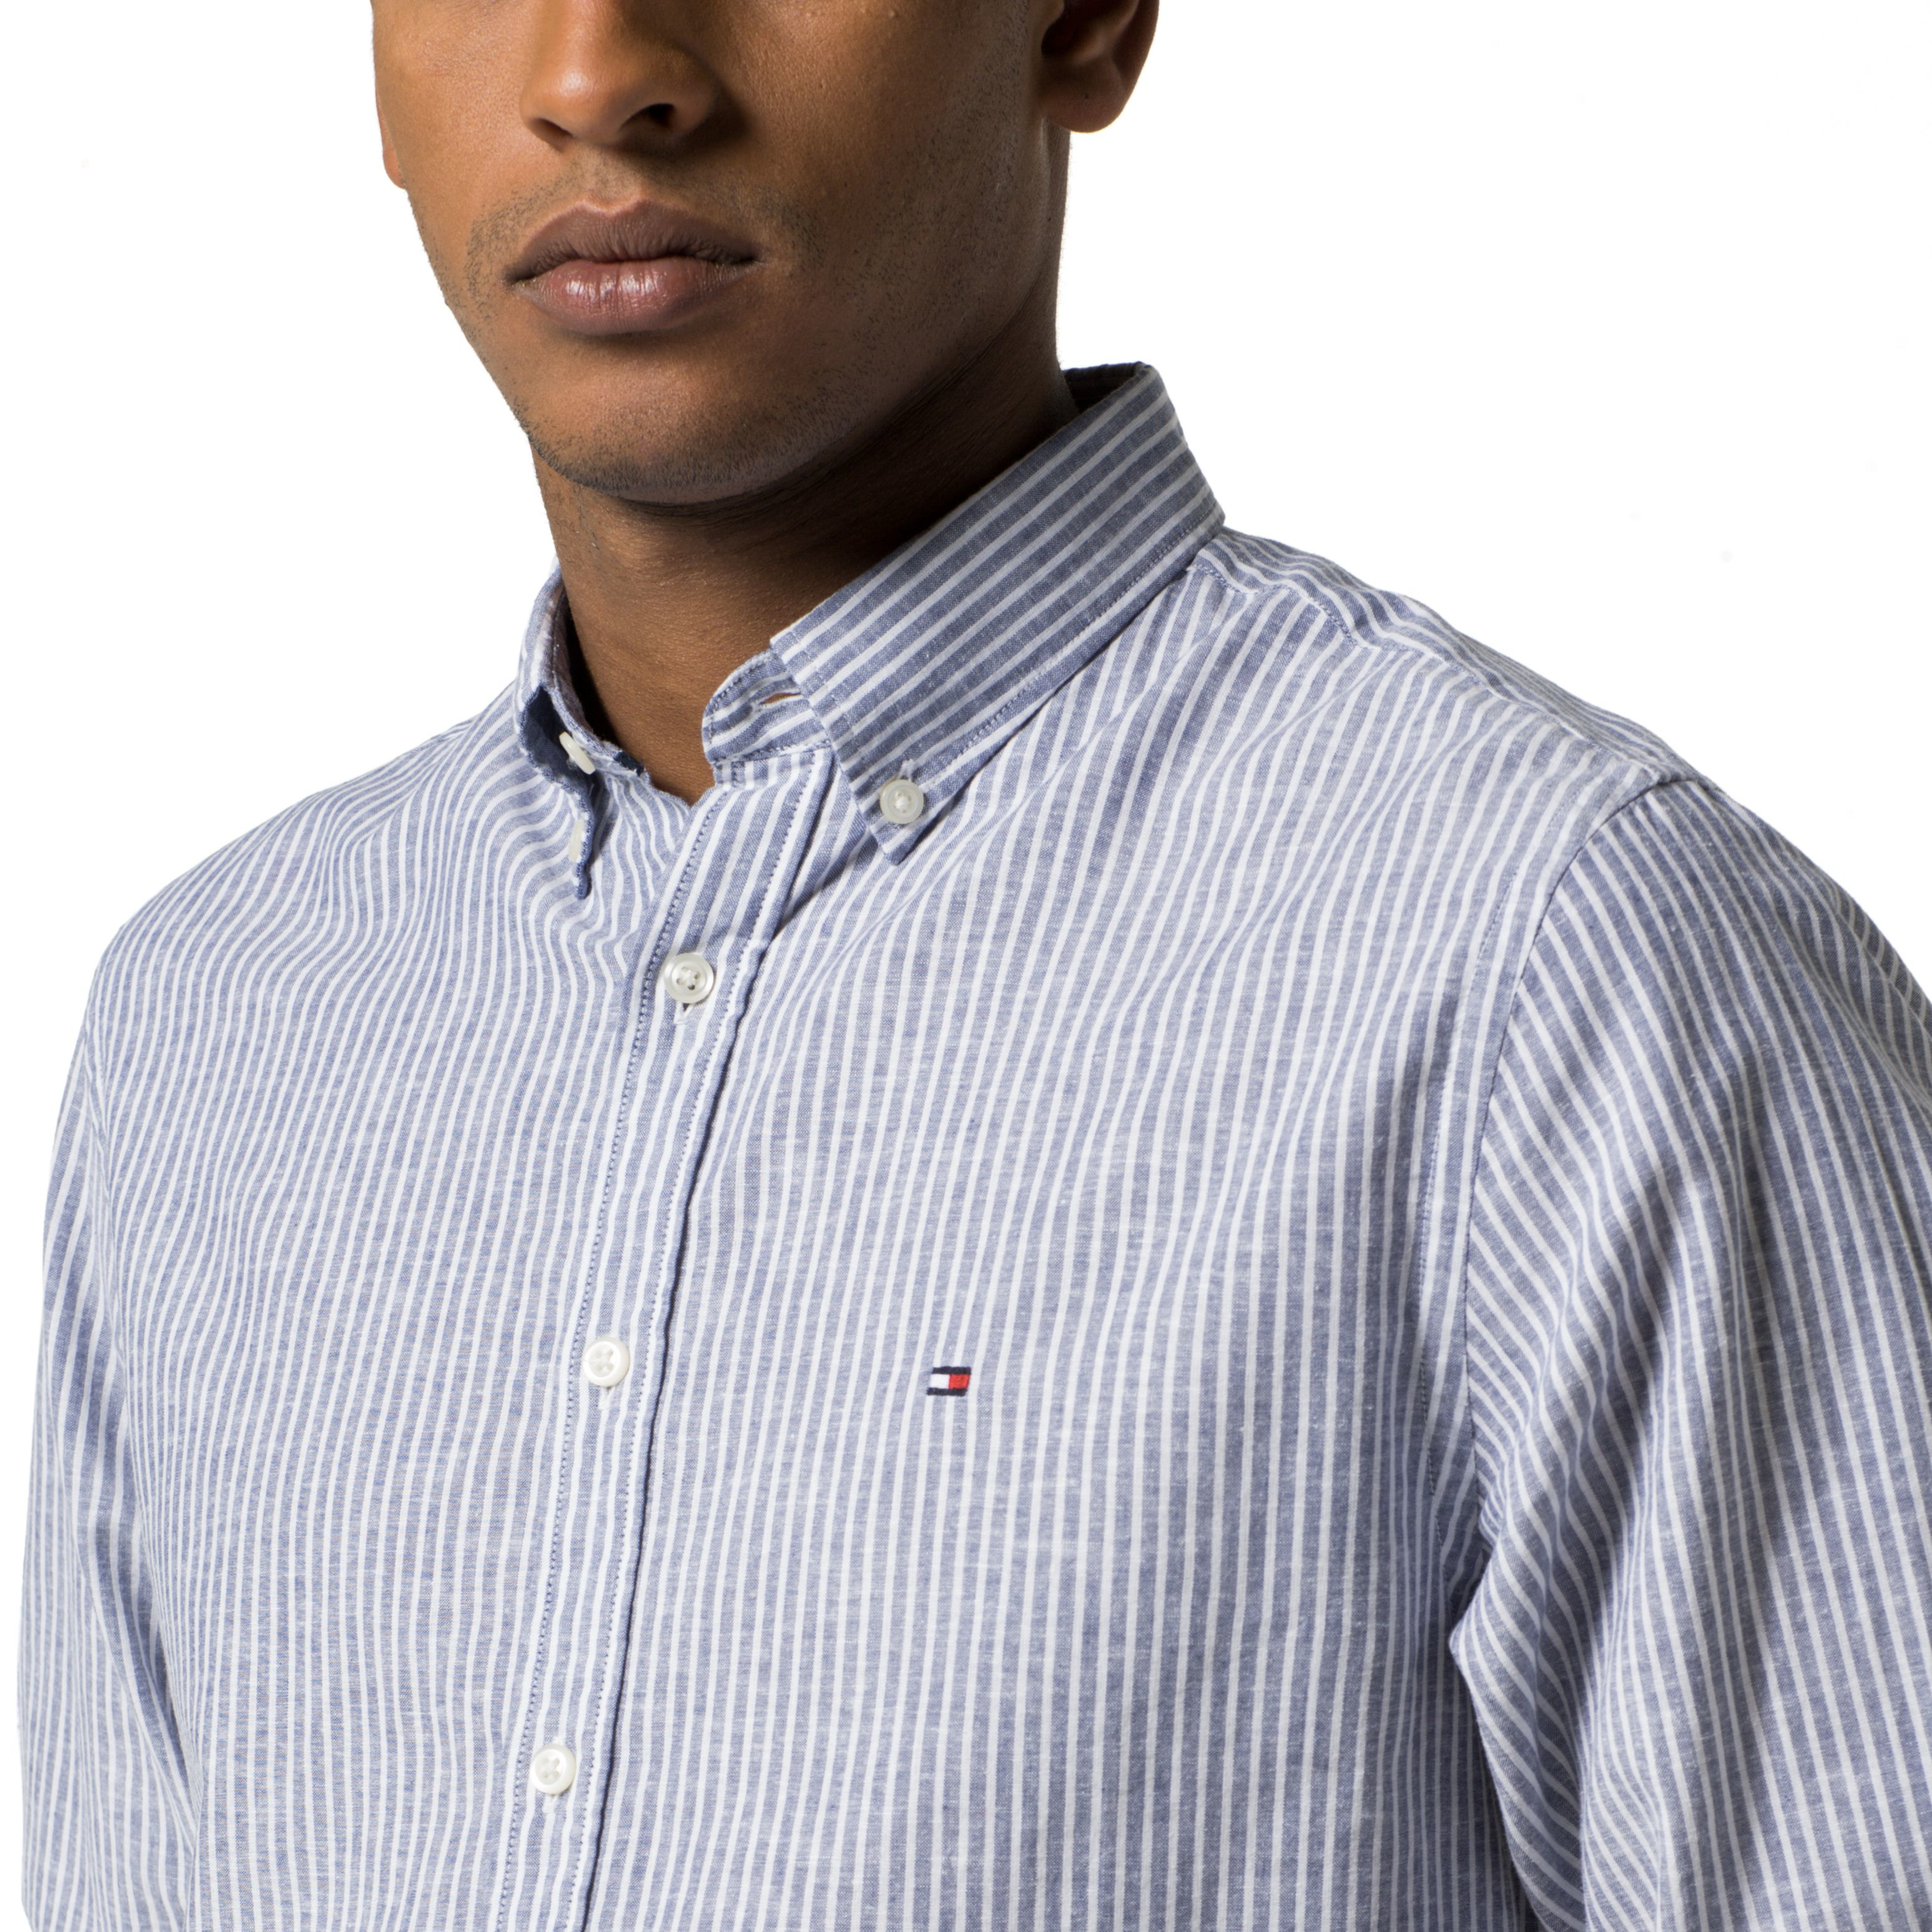 Lyst tommy hilfiger cotton linen stripe shirt in white for Tommy hilfiger fitzgerald striped shirt